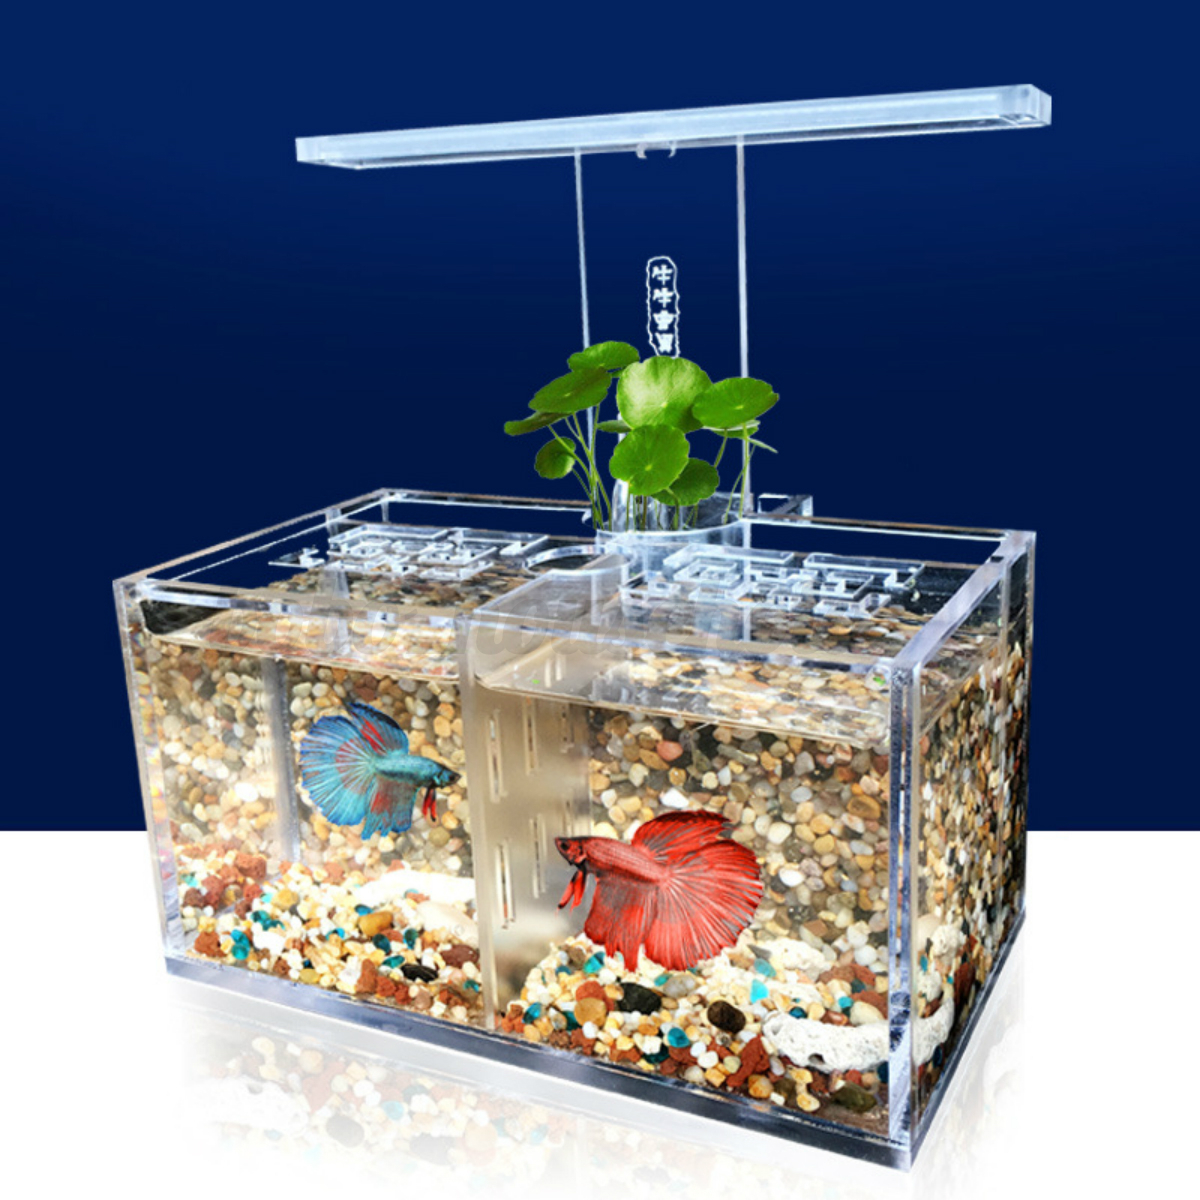 aquarium led acrylic betta fish tank set mini desktop light water pump filters ebay. Black Bedroom Furniture Sets. Home Design Ideas